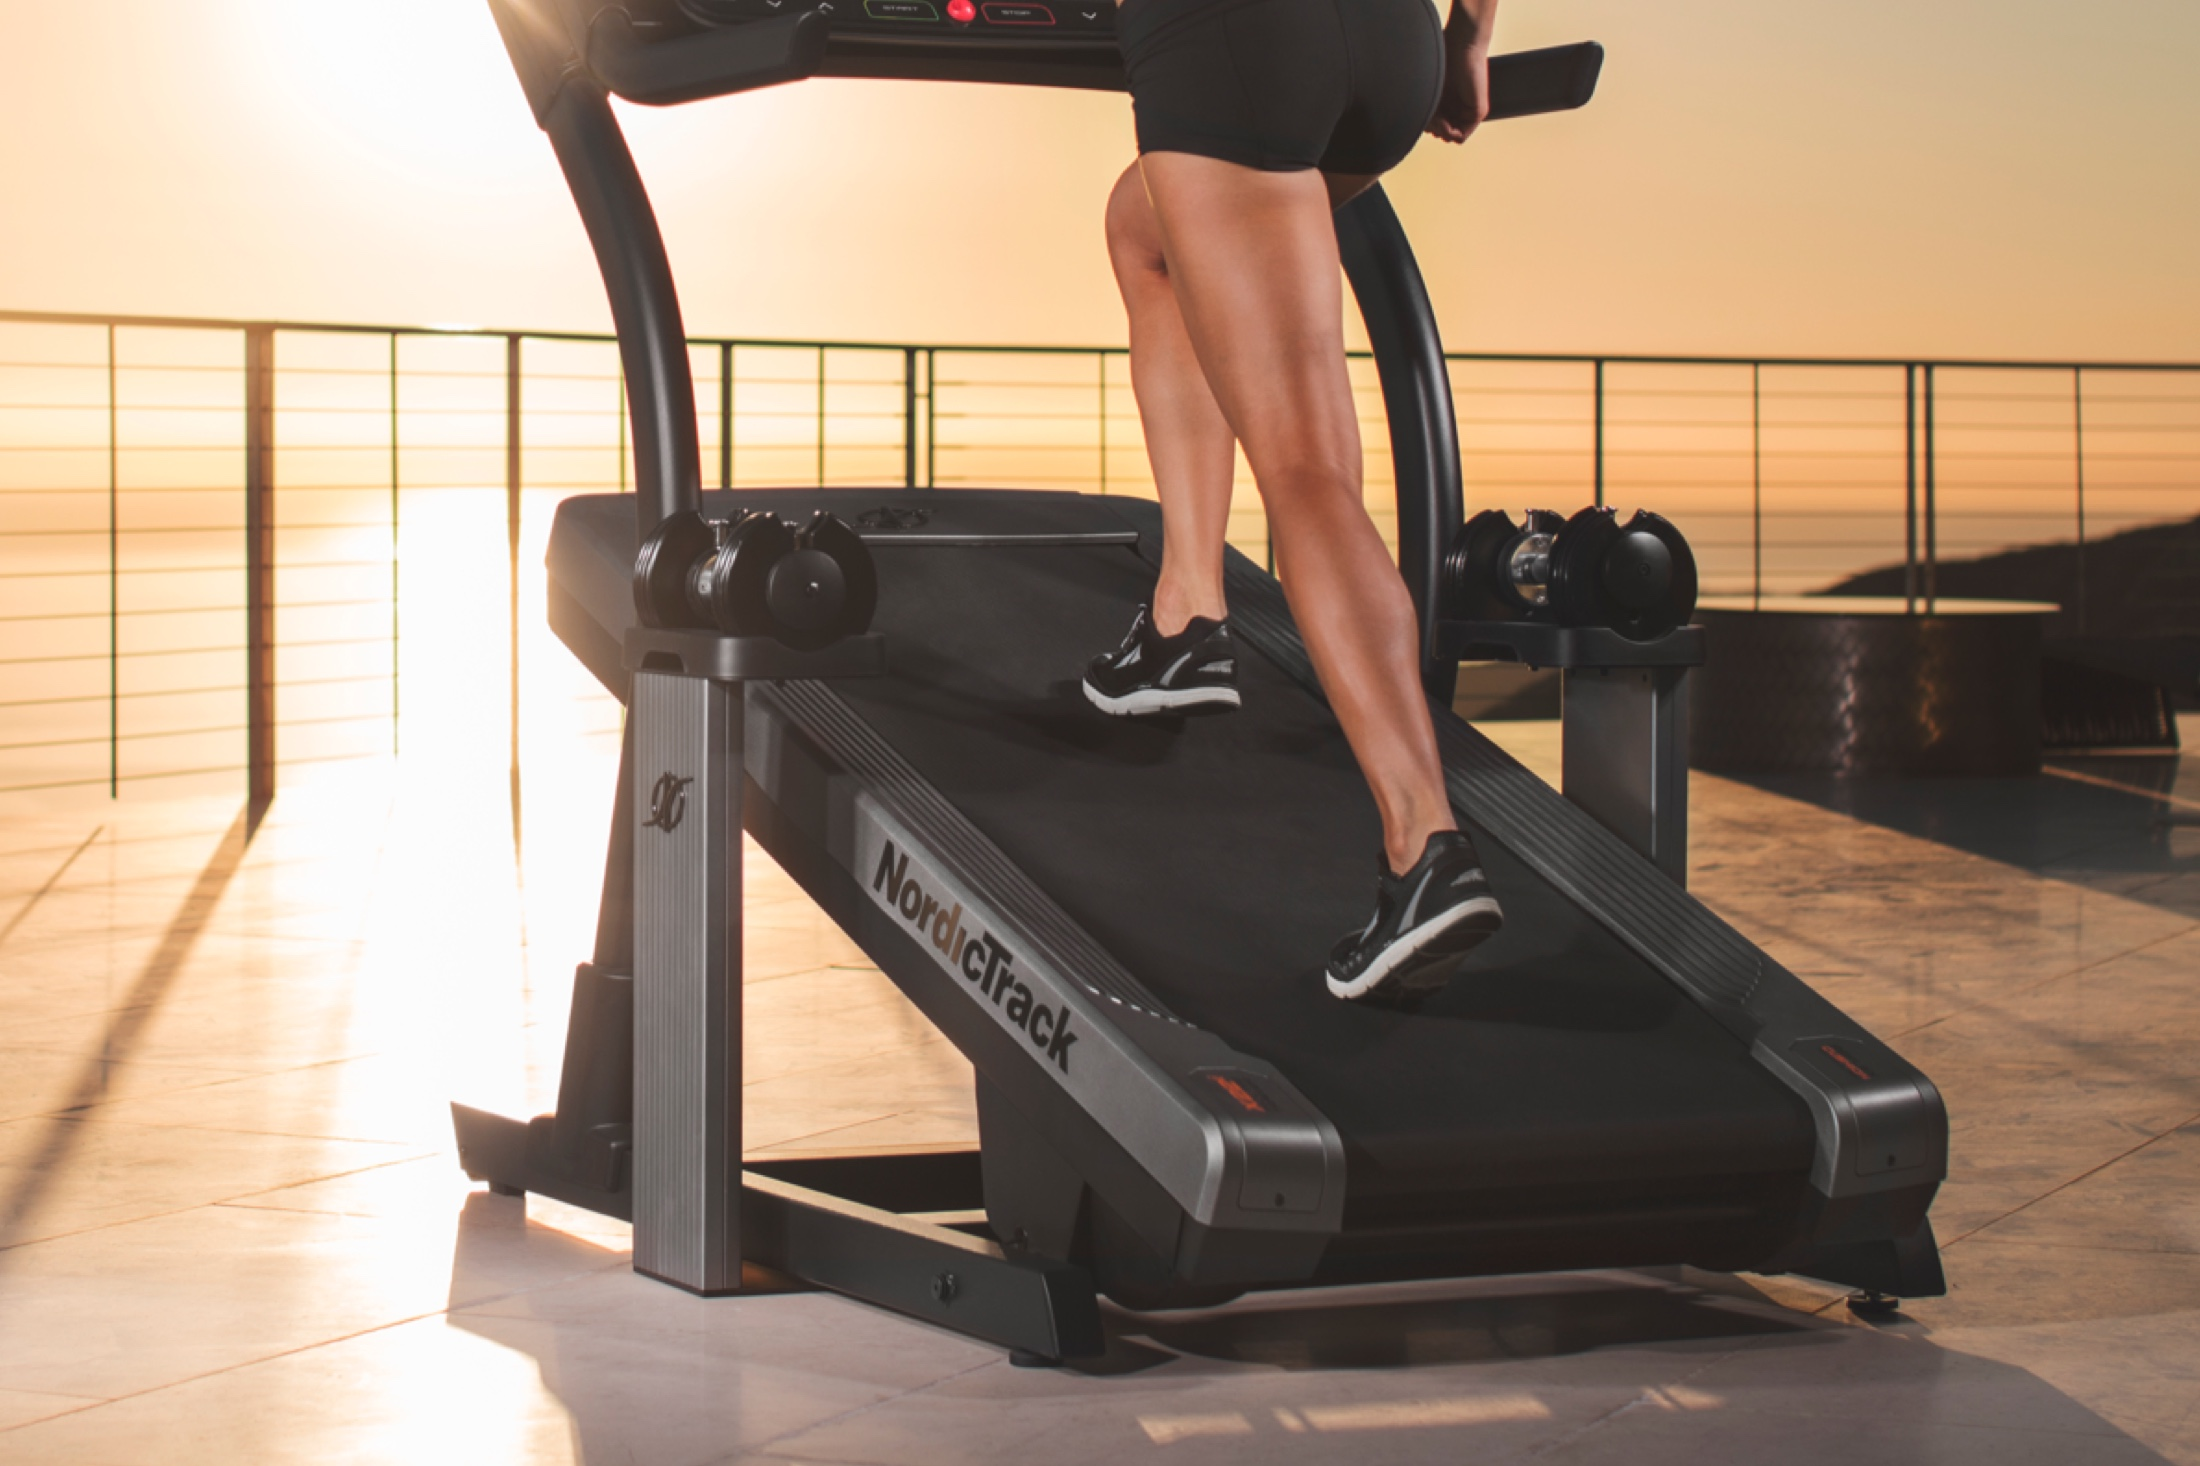 NordicTrack X22i Incline Trainer gallery image 5